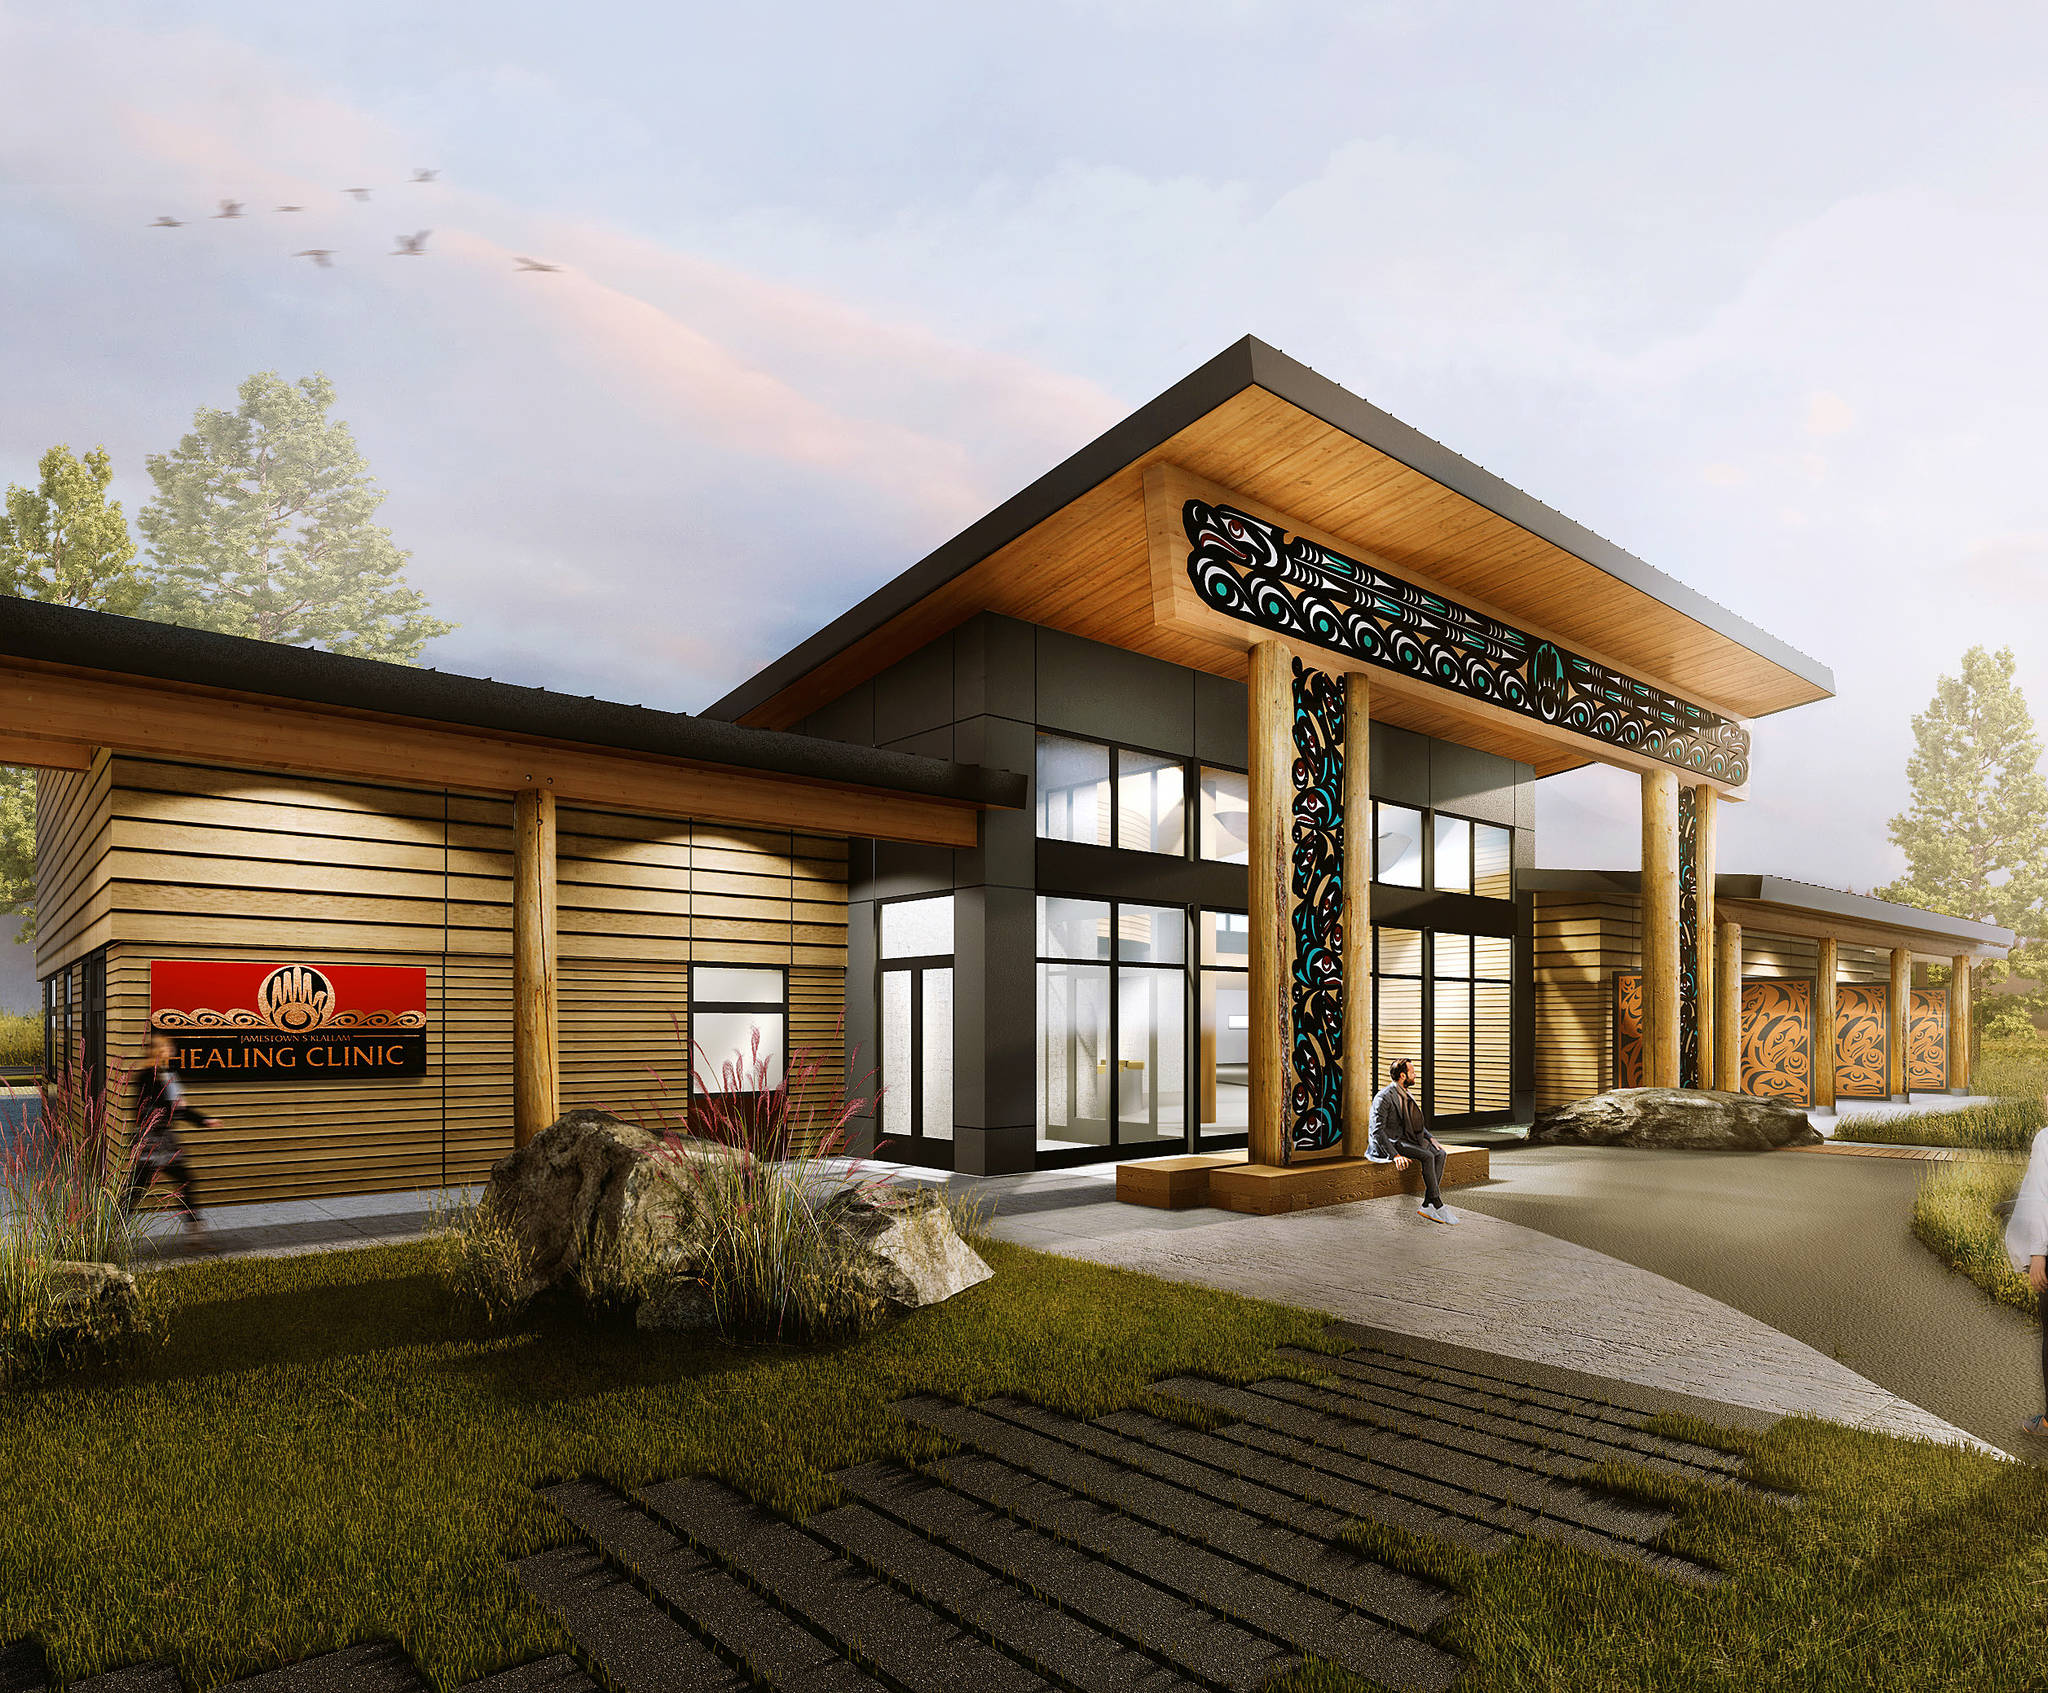 The Jamestown S'Klallam Tribe submitted its application for a medication-assisted treatment (MAT) clinic Jan. 10. (City of Sequim)